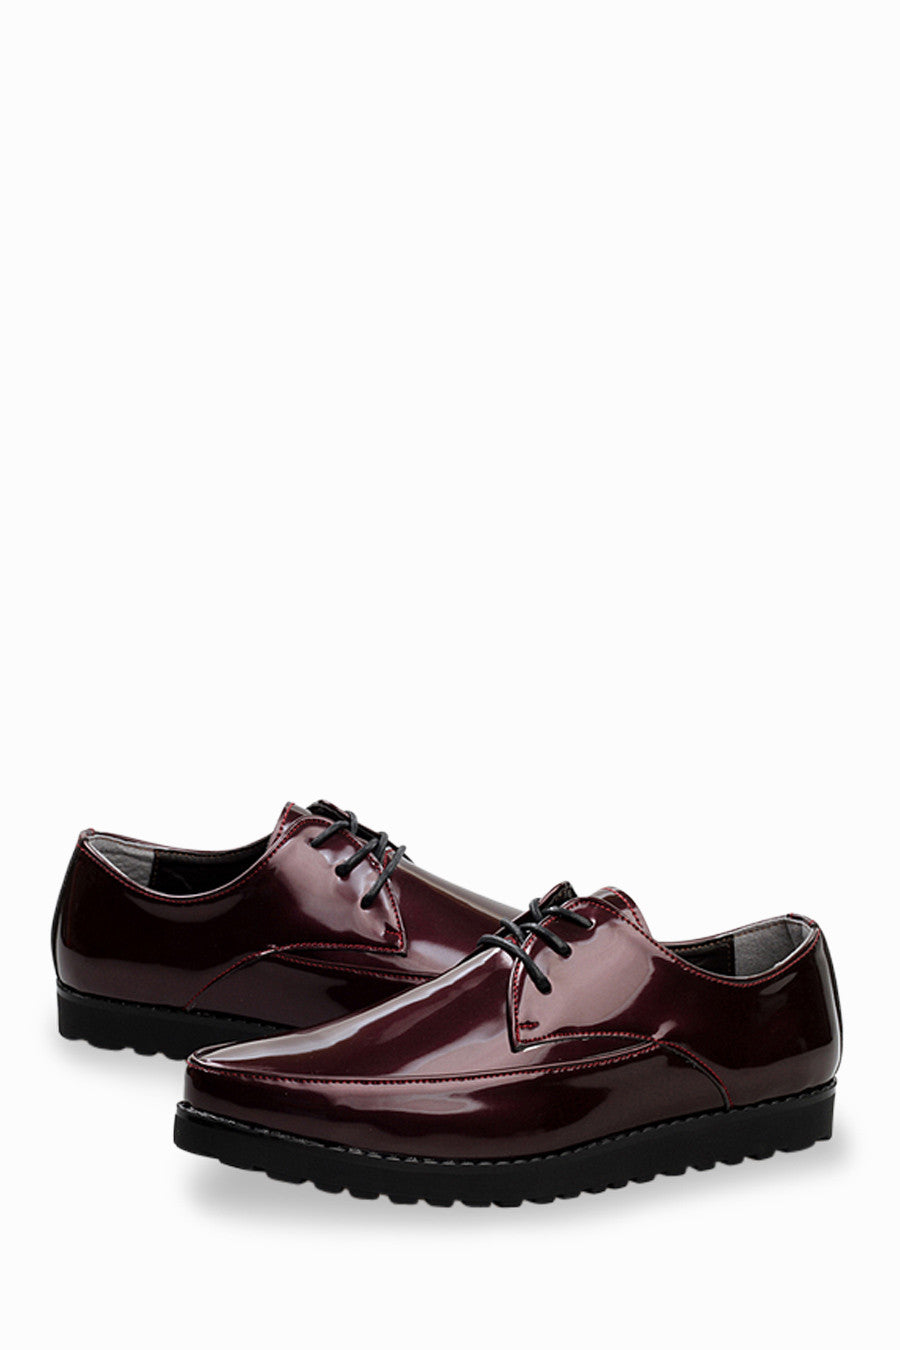 Patent Shoes In Burgundy